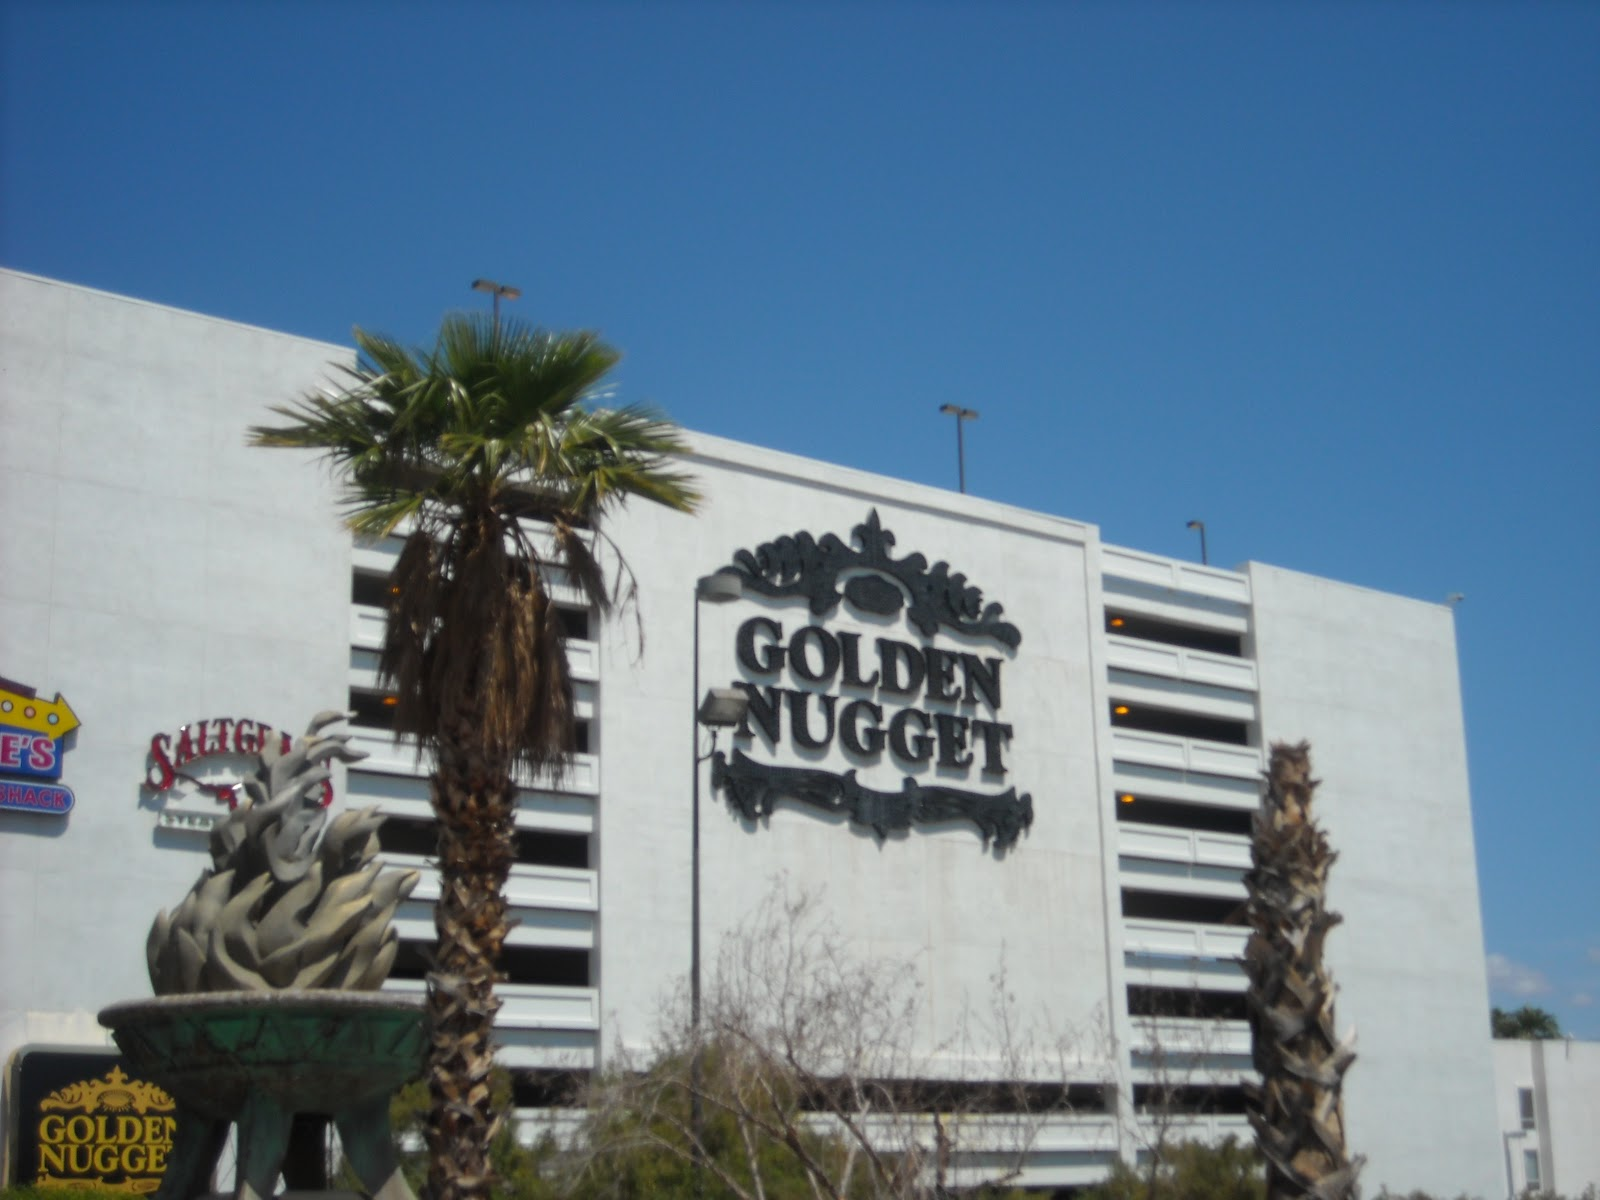 golden nugget casino online river queen